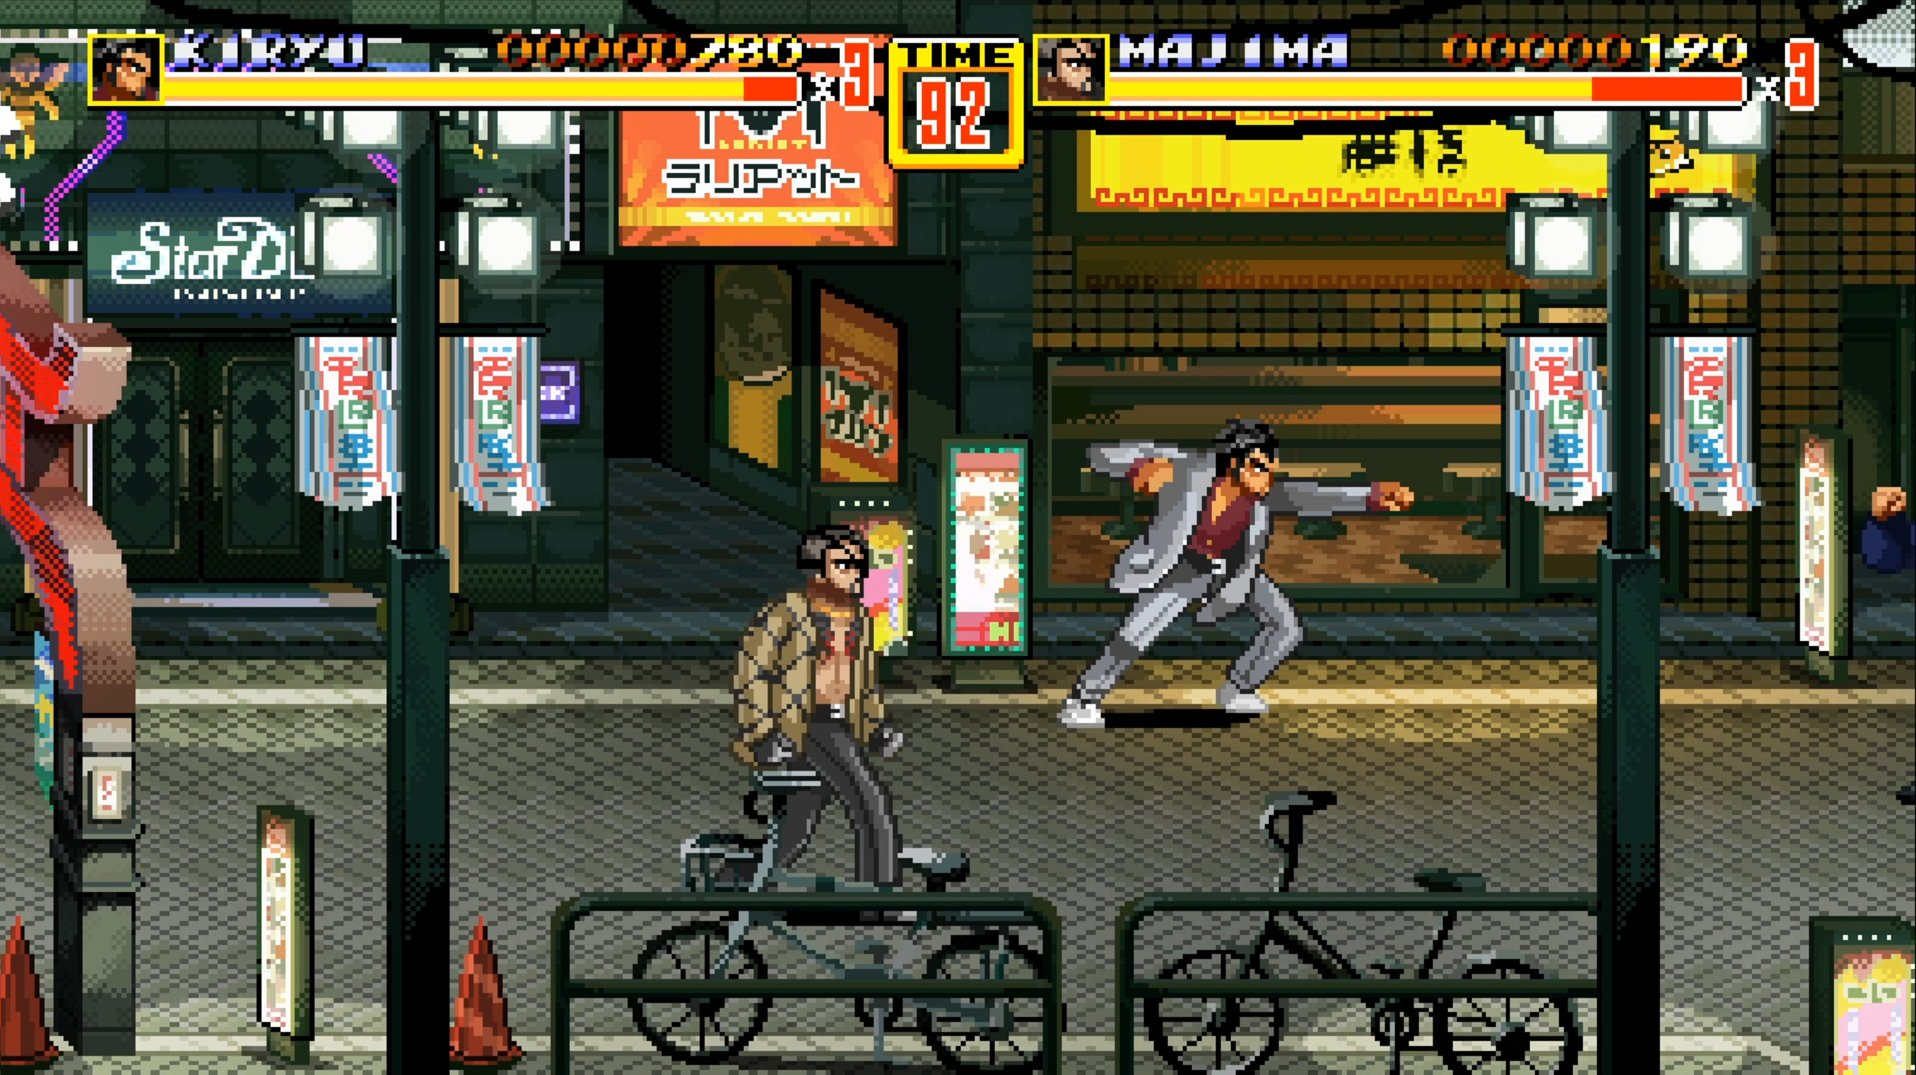 Don't miss Streets of Kamurocho and three other free Sega anniversary games while they're up for grabs screenshot